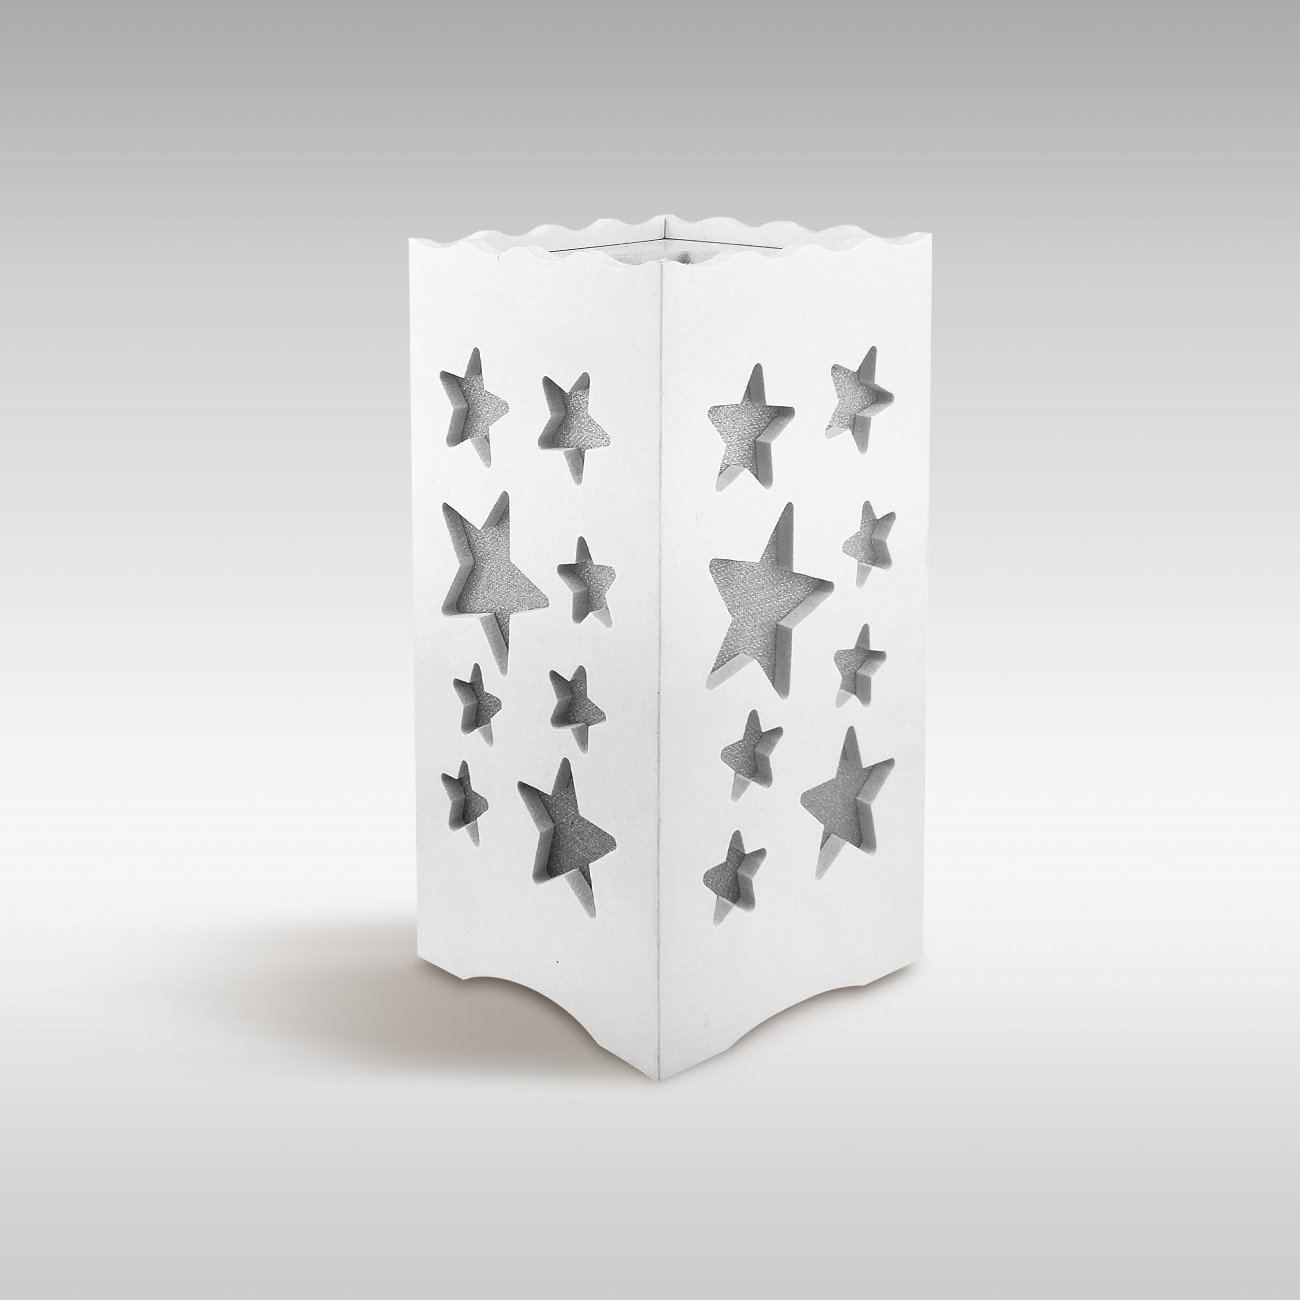 DIJIANI Bedside Table Lamp Simple Night Stand Lamp Contemporary Small Bedside Desk Lamp with Stars Cutout for Living Room, Bedroom, Study, Hotel, White